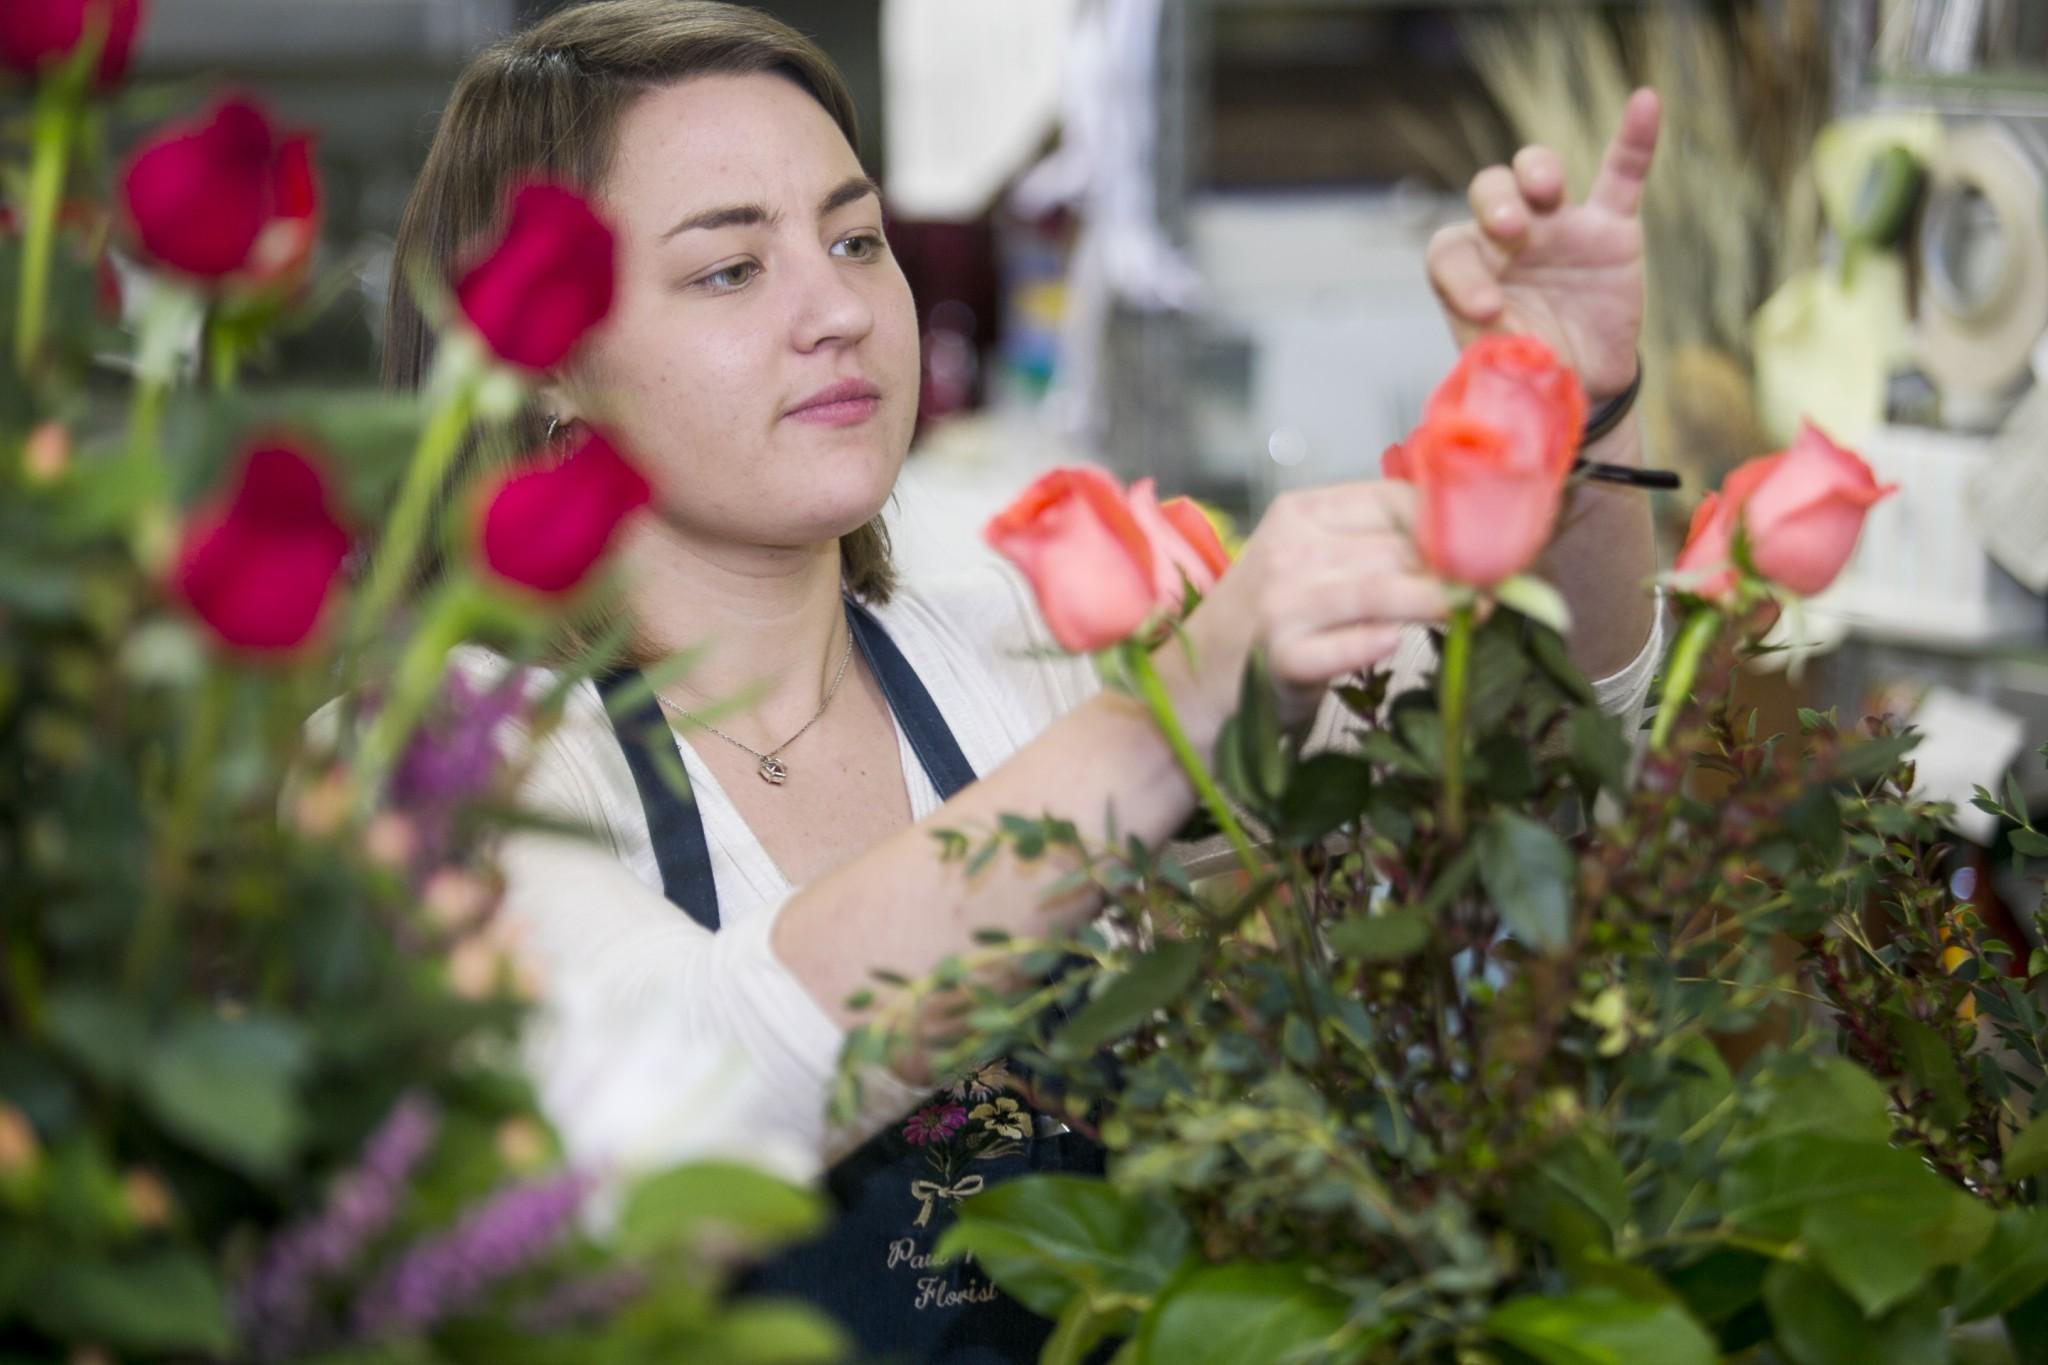 Krystal Kappeler, first year master's candidate in horticulture, arranges flowers for Valentine's Day at Paul Wood flower shop in Old Town. Many of Paul Wood's flowers come from Latin, South America, or Hawaii.